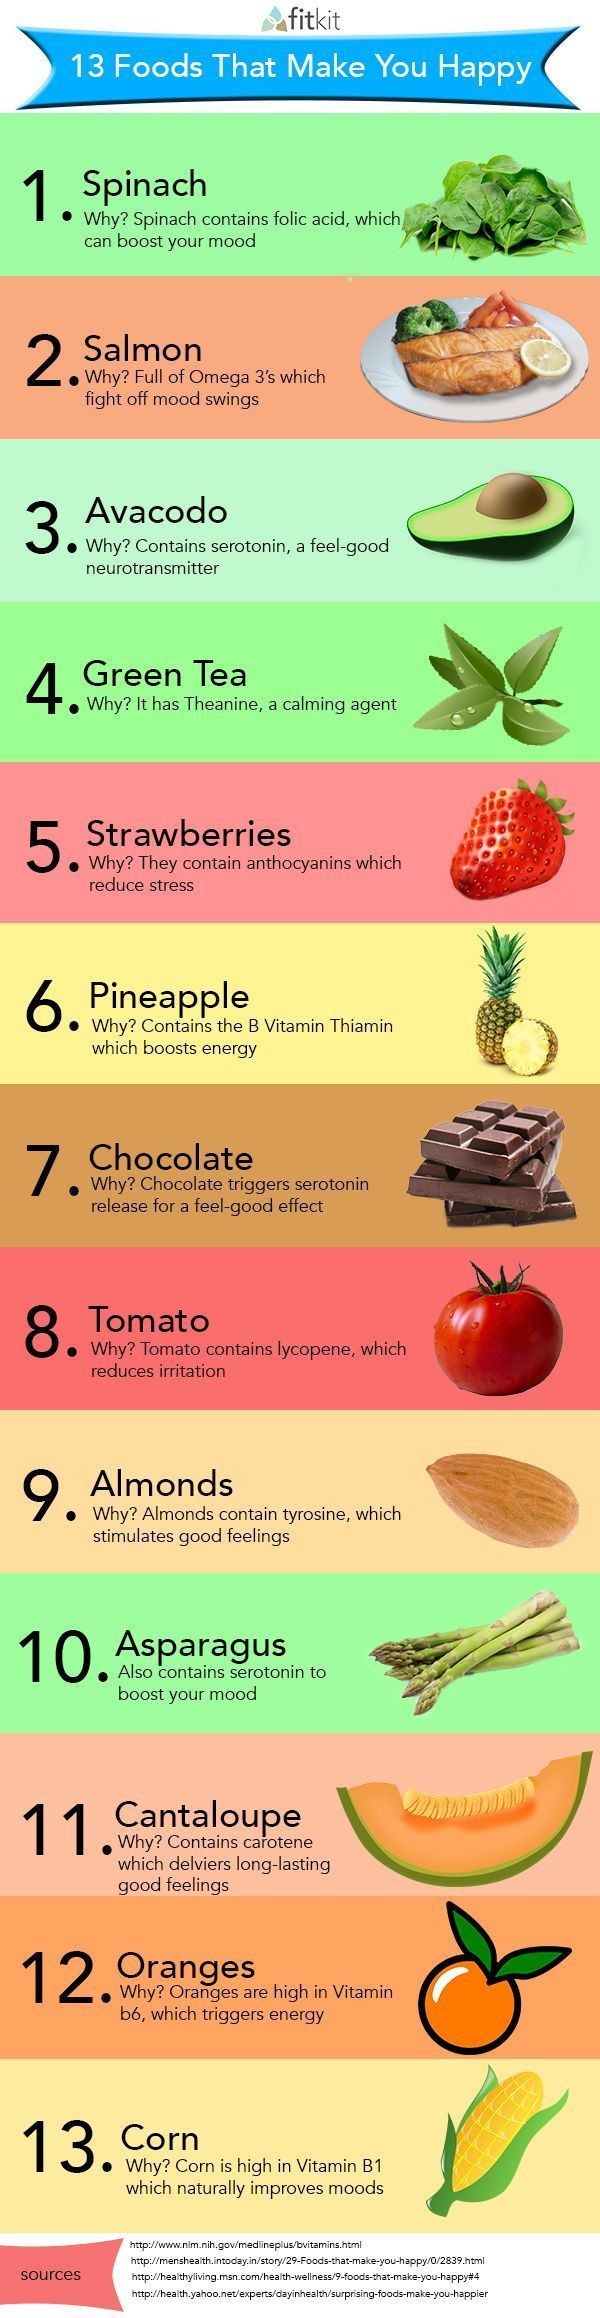 These 13 Foods That Make You Happy! fruit healthy motivation nutrition veggie weightloss almonds anthrocyanins asparagus avocado cantaloupes carotene chocolate corn energy folic acid lycopene mood omega 3 fatty acids Oranges pineapples Salmon serotonin Spinach strawberries tea theanine thiamin tomatoes tyrosine vitamin B vitamin B1 vitamin B6 vitamins http://ift.tt/1LRDALd Posted by Nadine Lourens – Need a #moodboost? C/O these 13 foods that make you happy! Add Karma Wellness Water SPIRIT to…